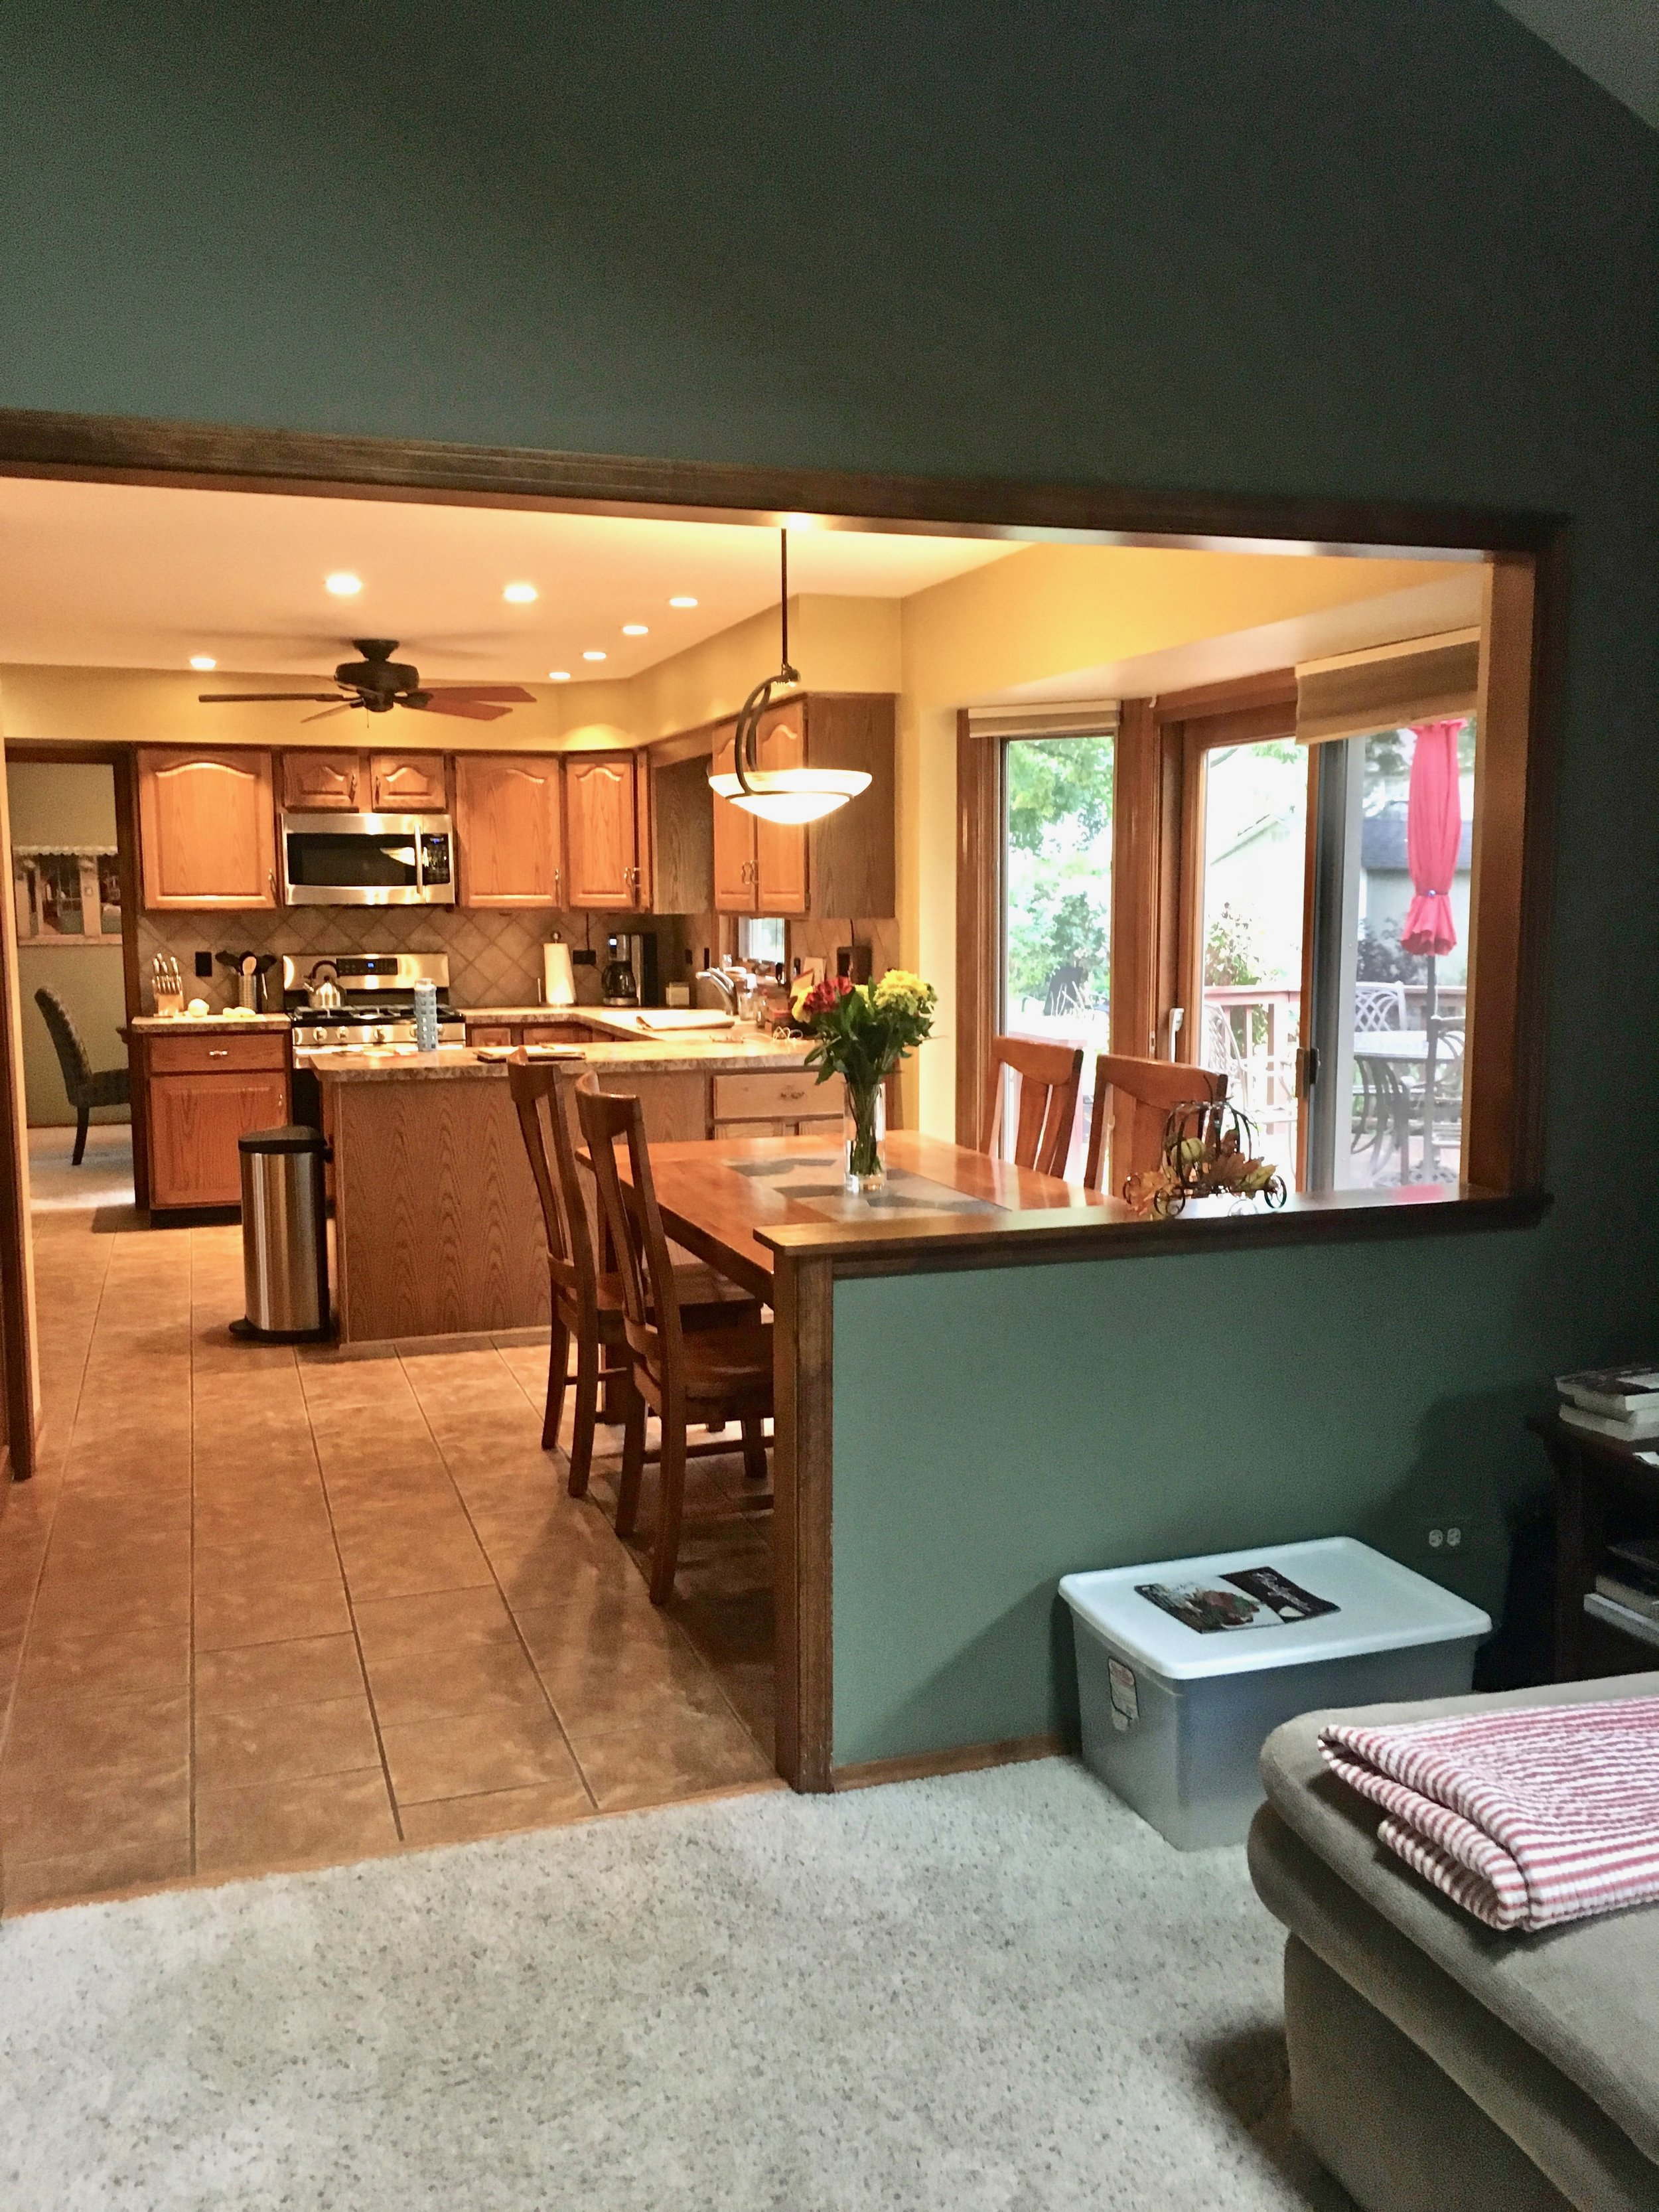 BEFORE PHOTO OF NAPERVILLE ILLINOIS CUSTOM HOME WITH HALF WALL BETWEEN KITCHEN & FAMILY ROOM